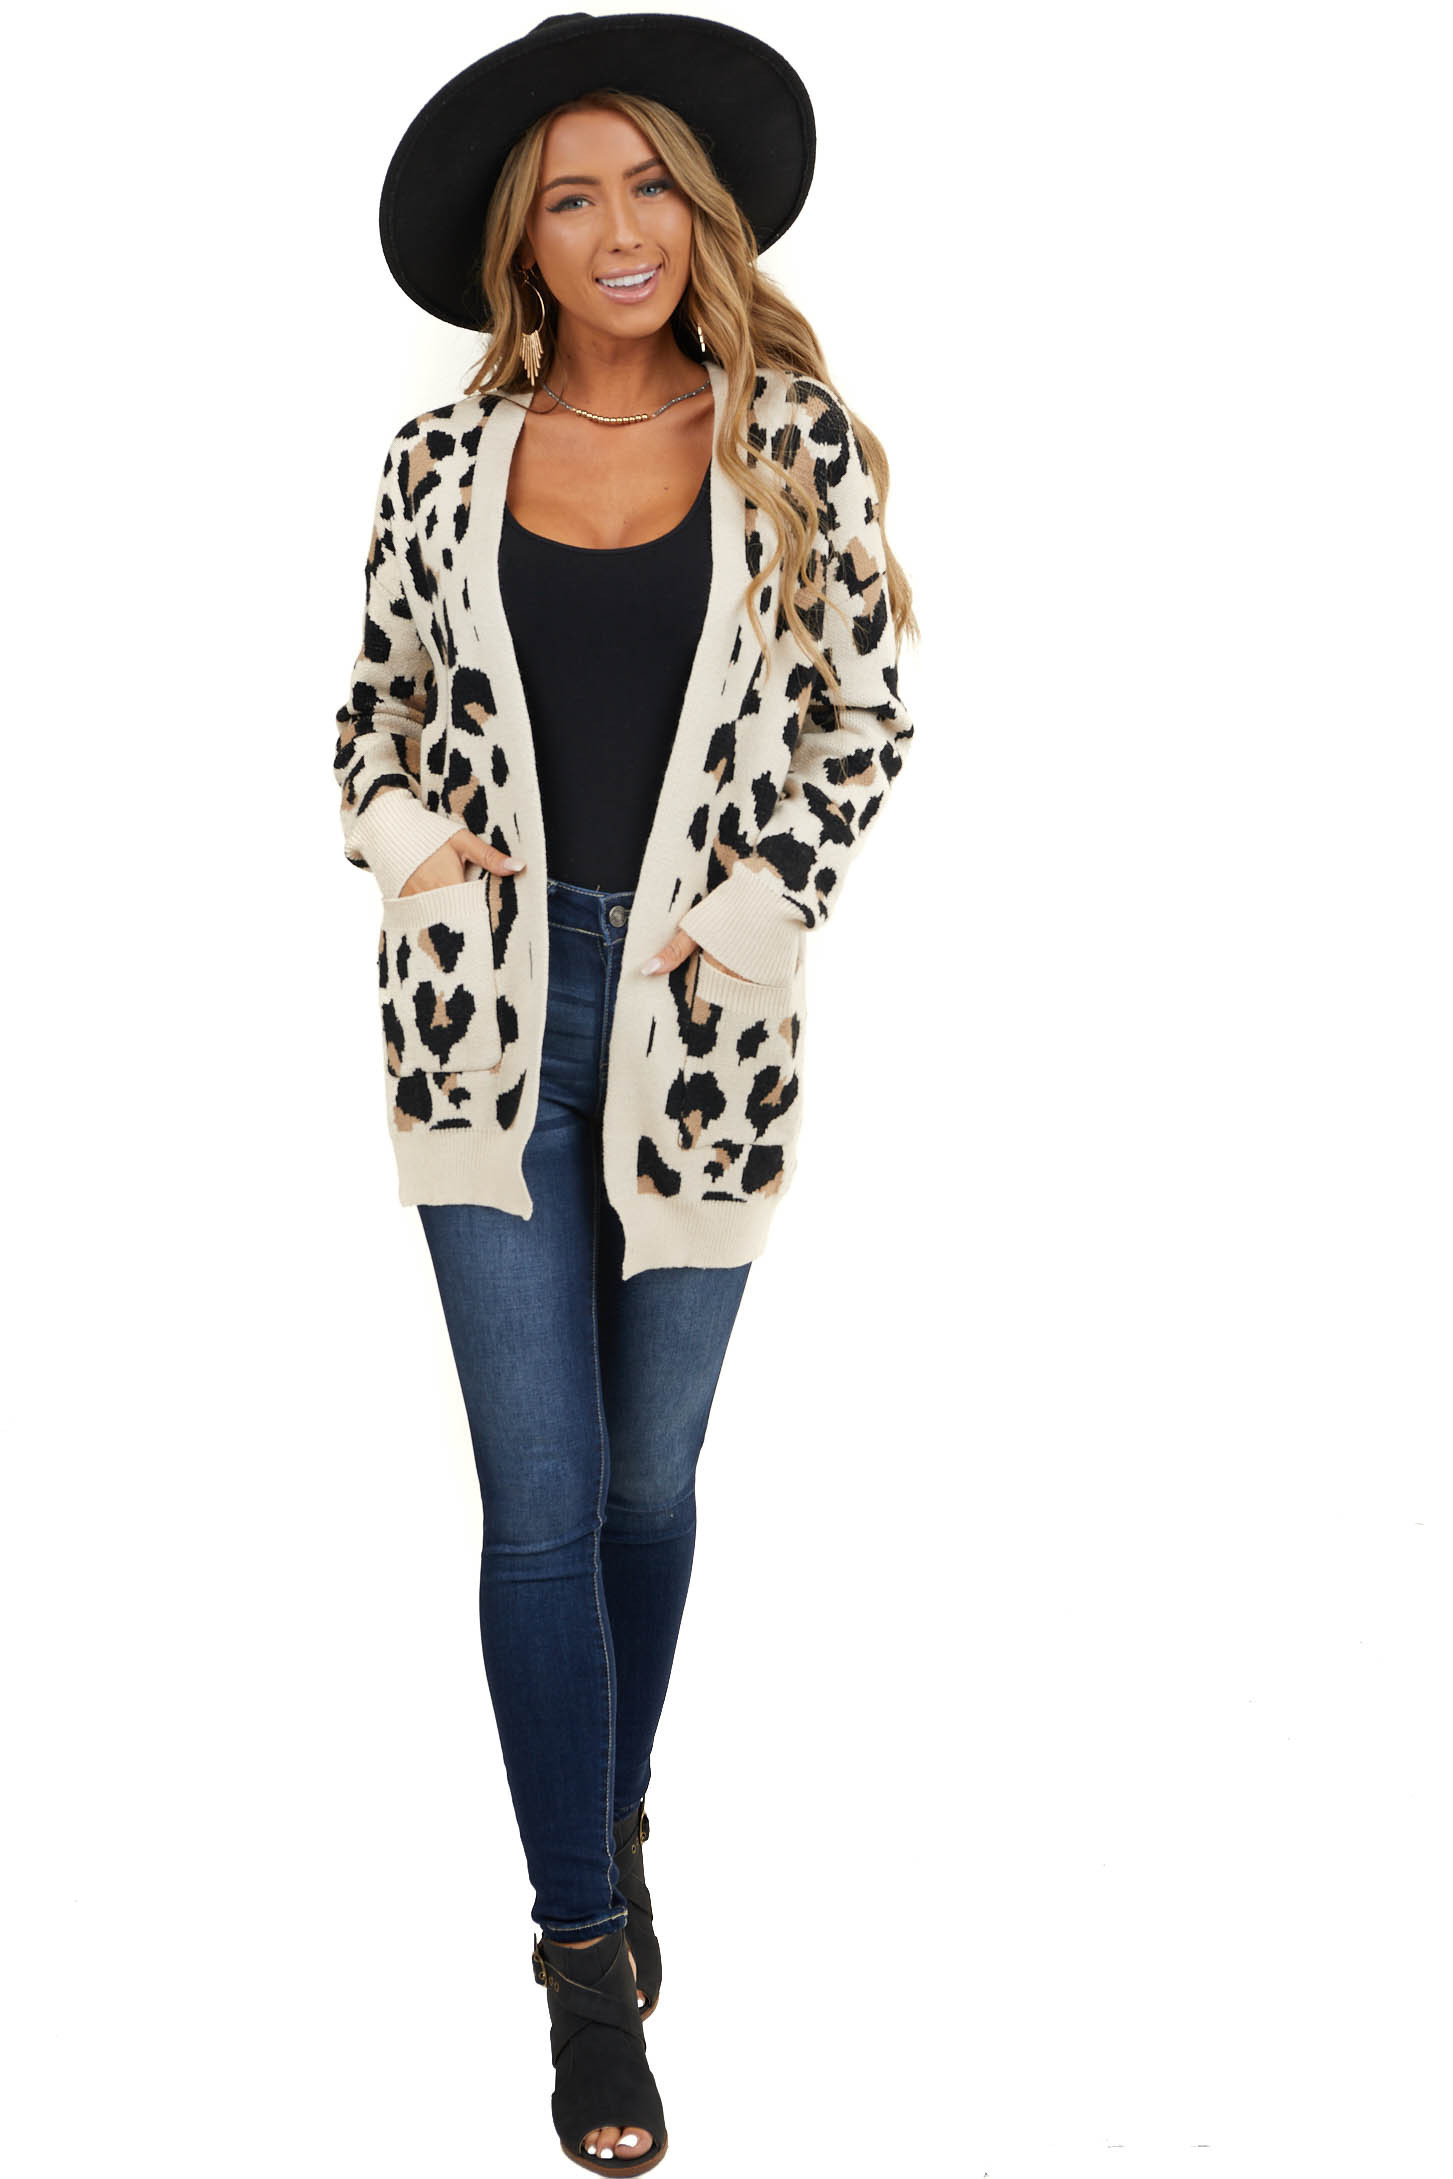 Oatmeal Leopard Print Super Soft Cardigan with Pockets